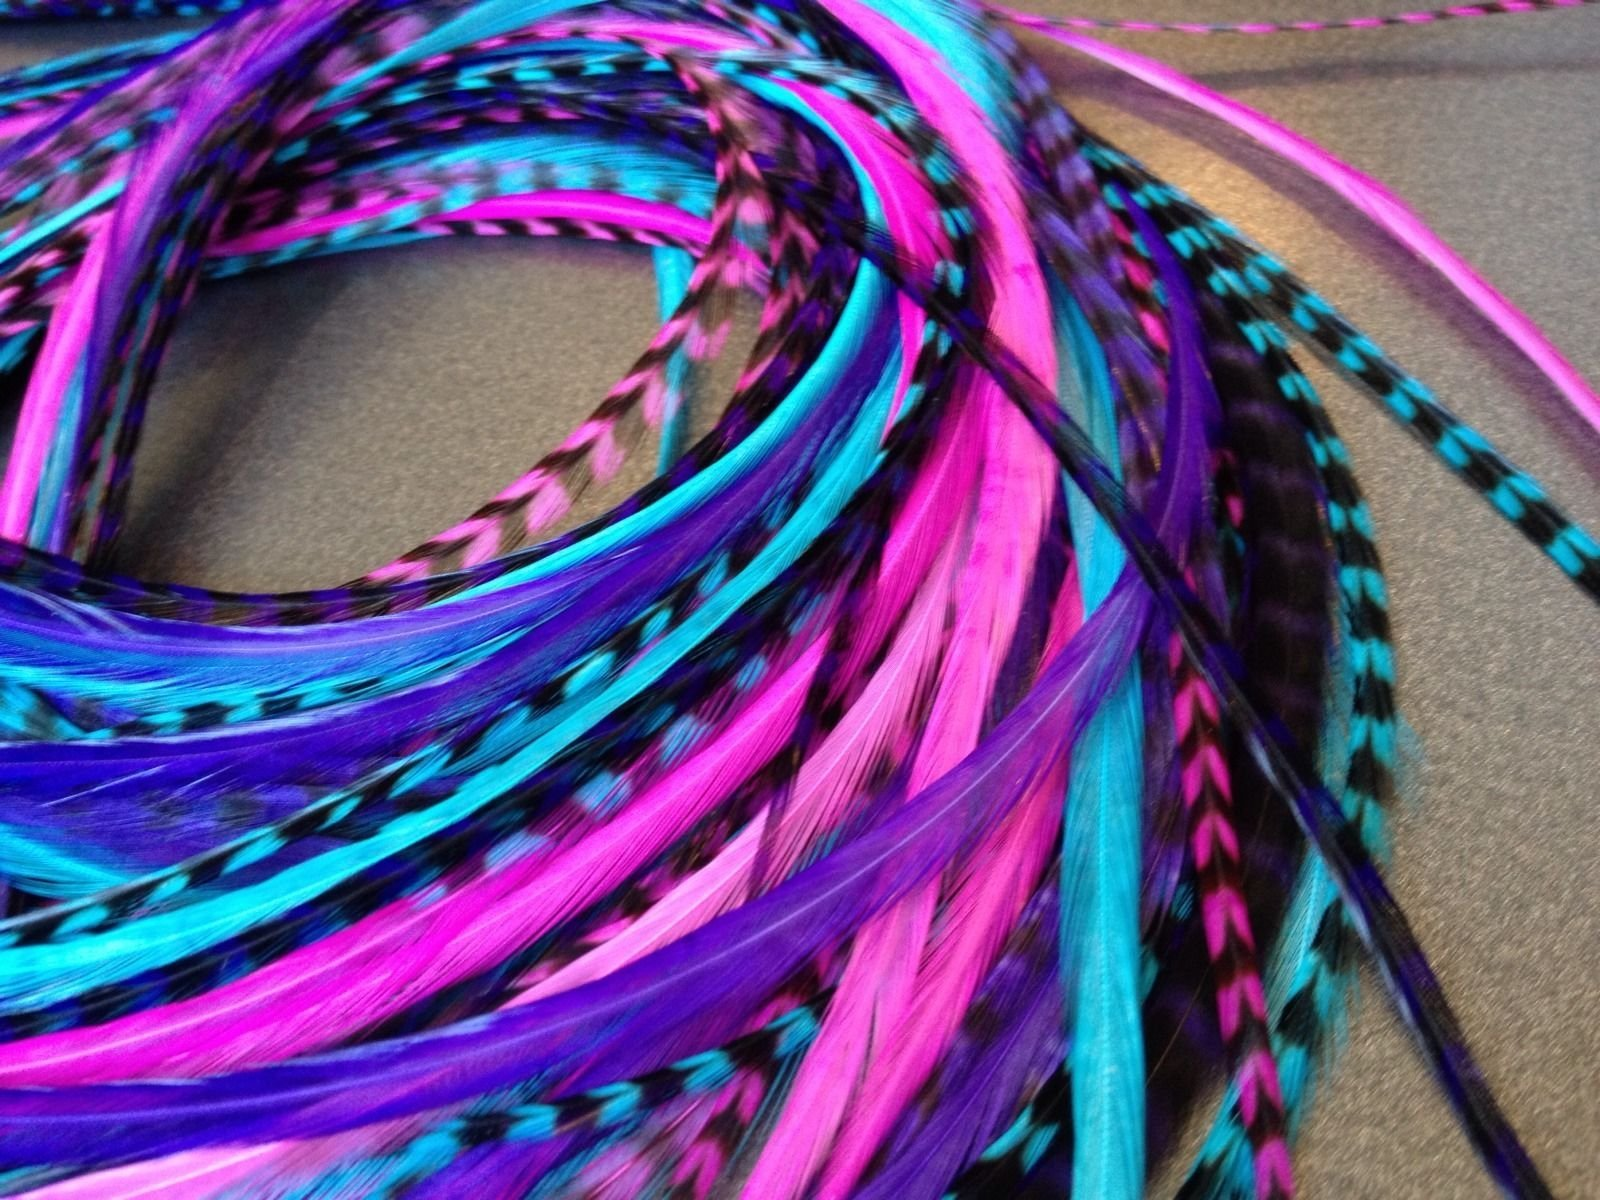 Feather Hair Extensions, 100% Real Rooster Feathers, Long Pink, Purple, Blue Colors, 20 Feathers with Bonus FREE Beads and Loop Tool Kit by Feather Lily (Image #3)